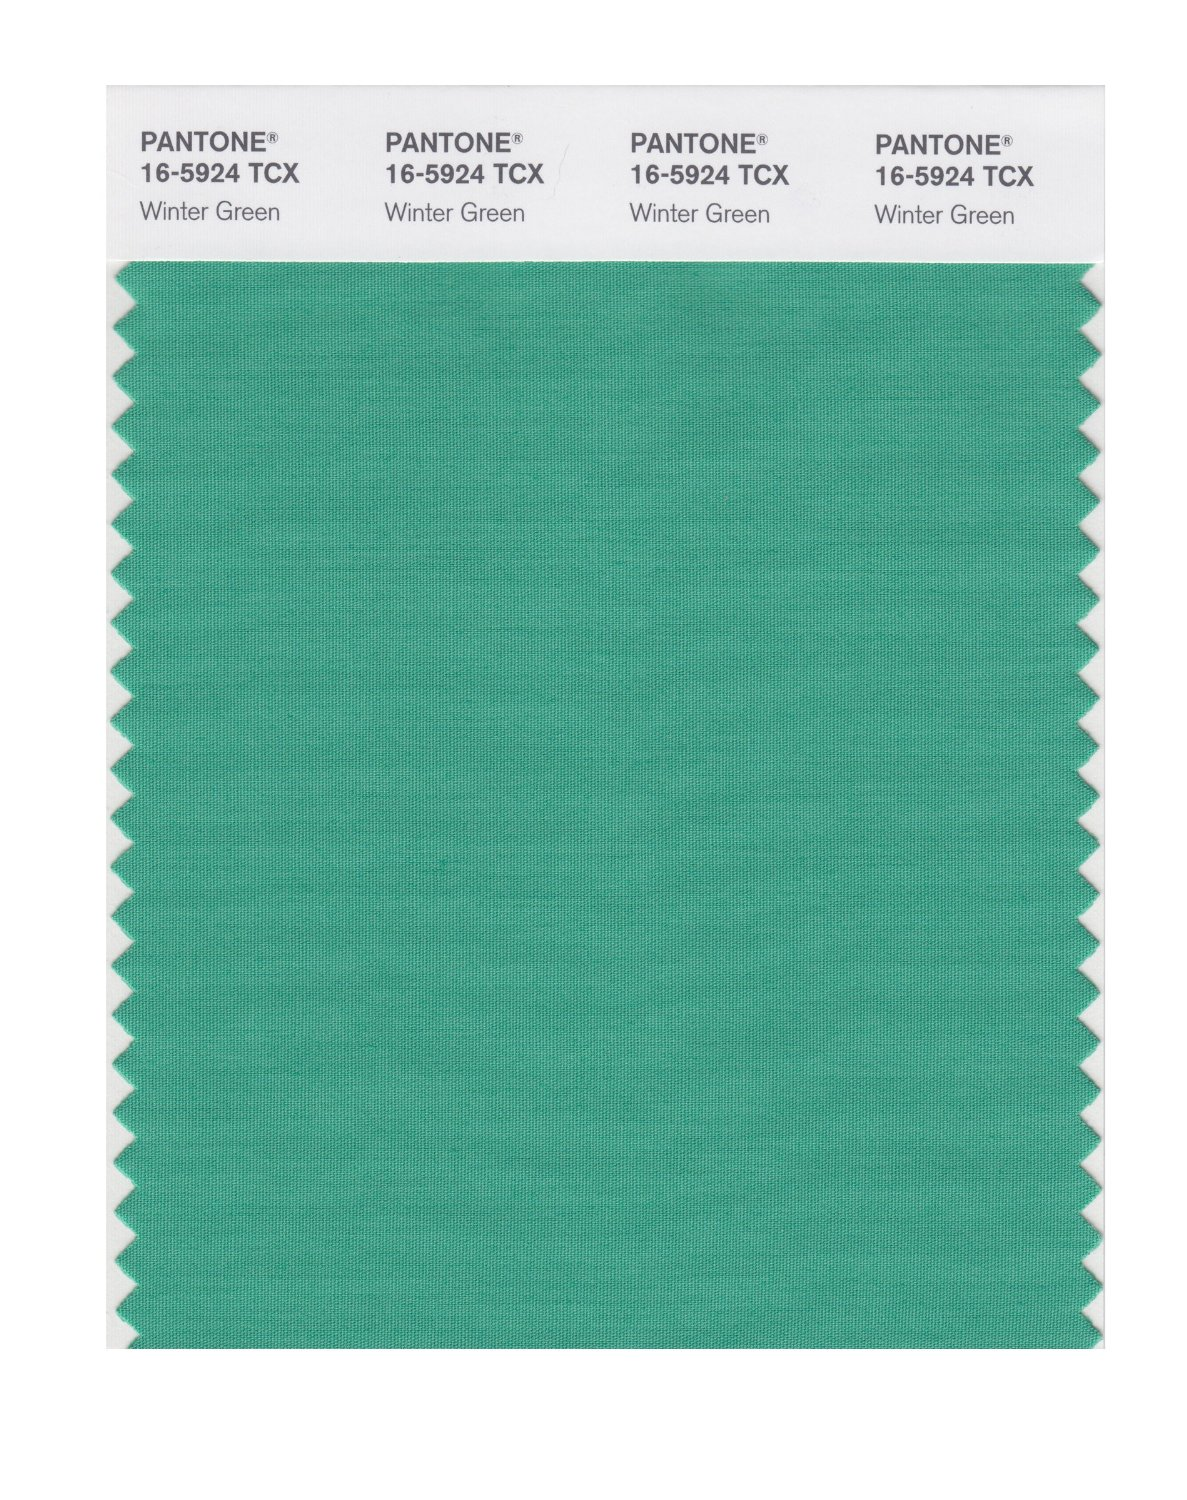 Pantone Smart Swatch 16-5924 Winter Green